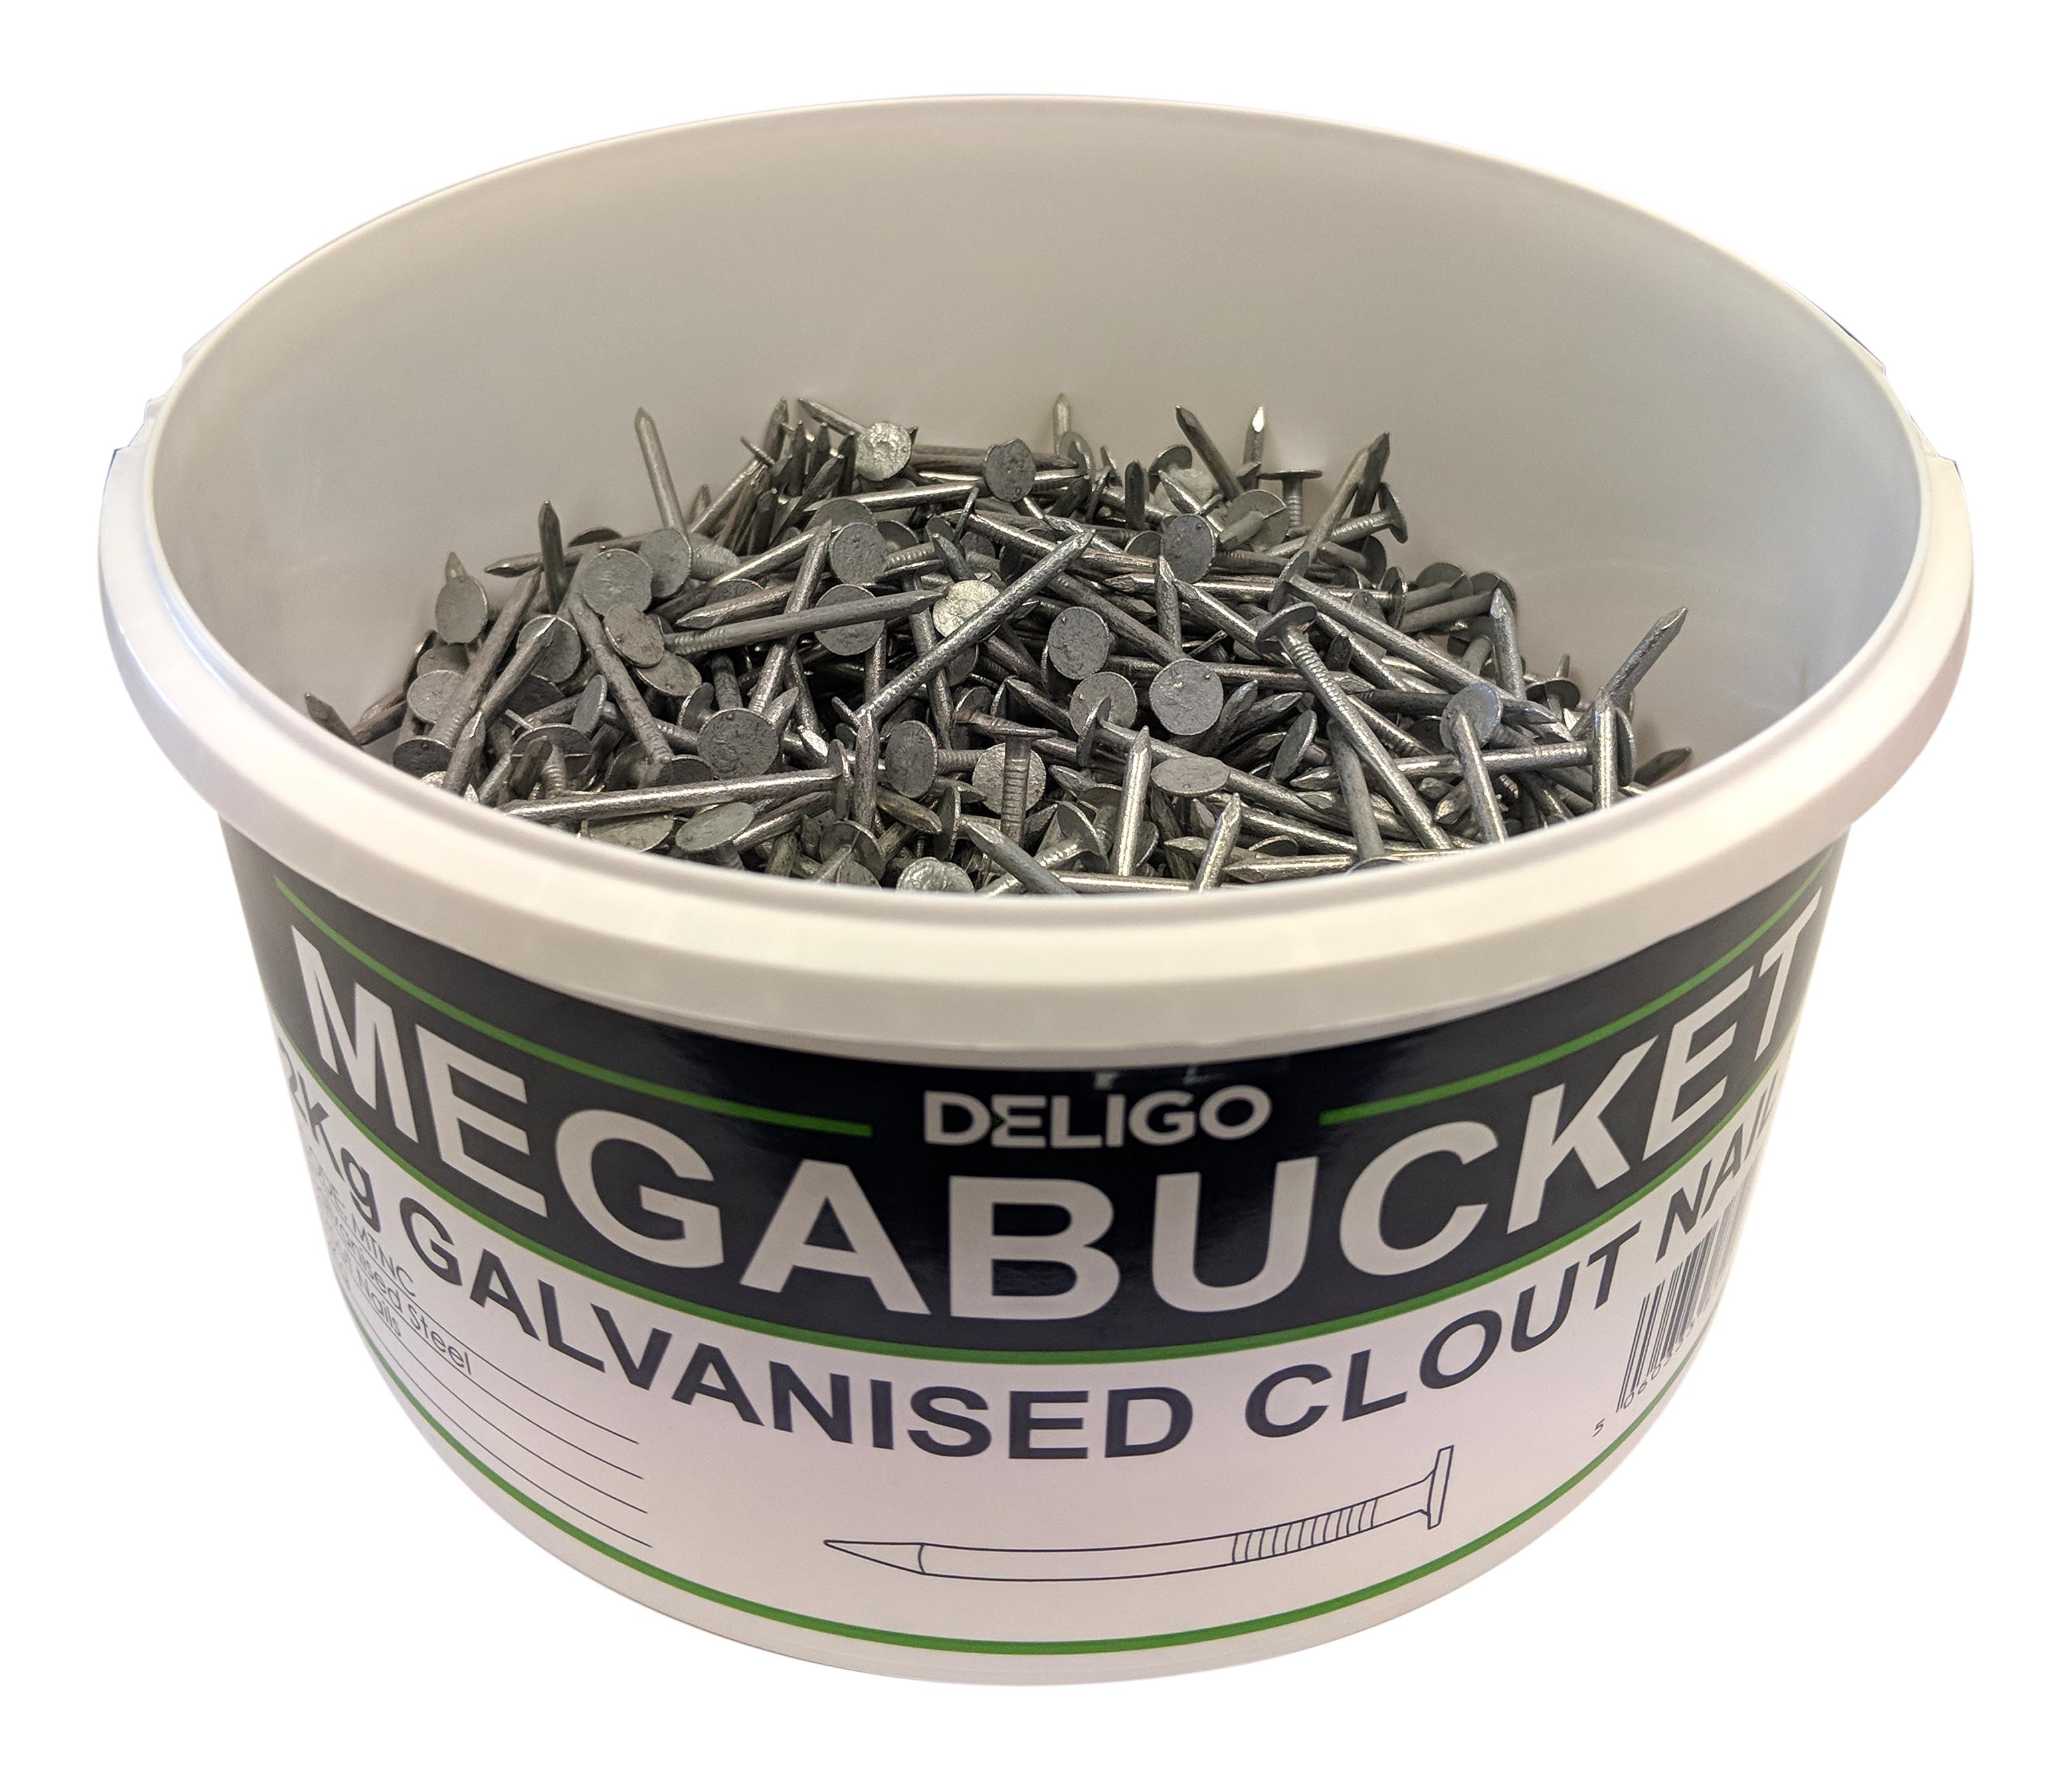 MEGA BUCKET 2KG - 40MM CLOUT NAILS